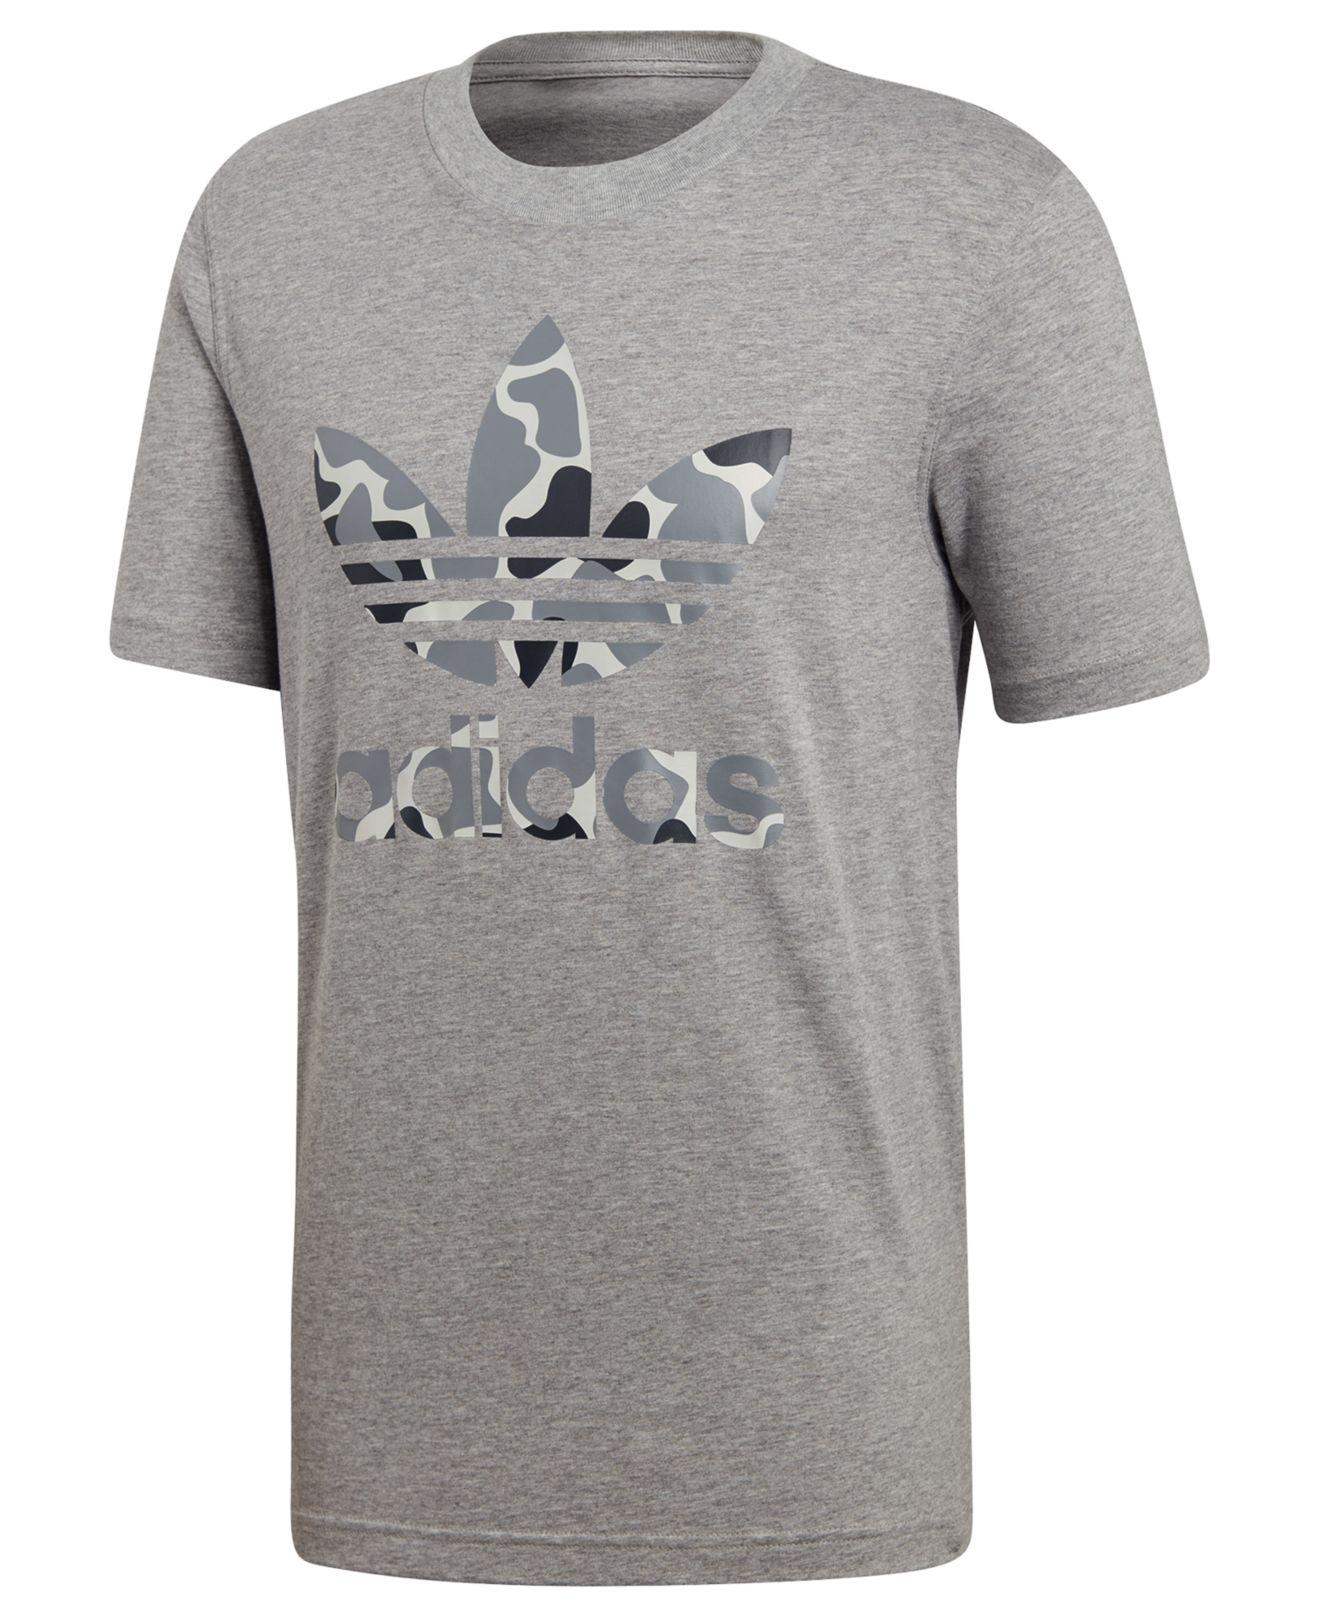 028004ddf02faf Lyst - adidas Originals Camo-print Treifoil T-shirt in Gray for Men